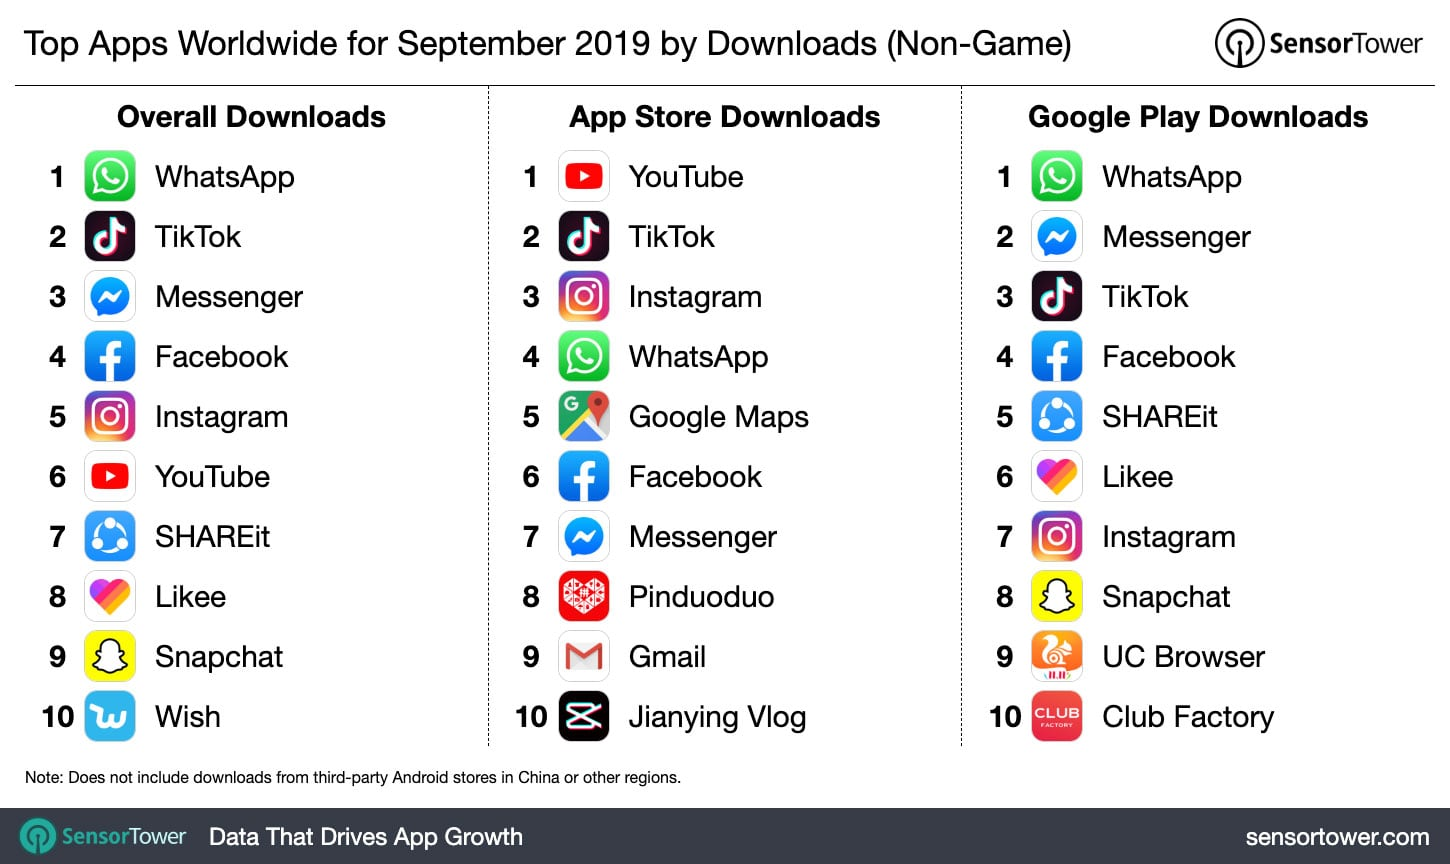 ranking of top apps worldwide